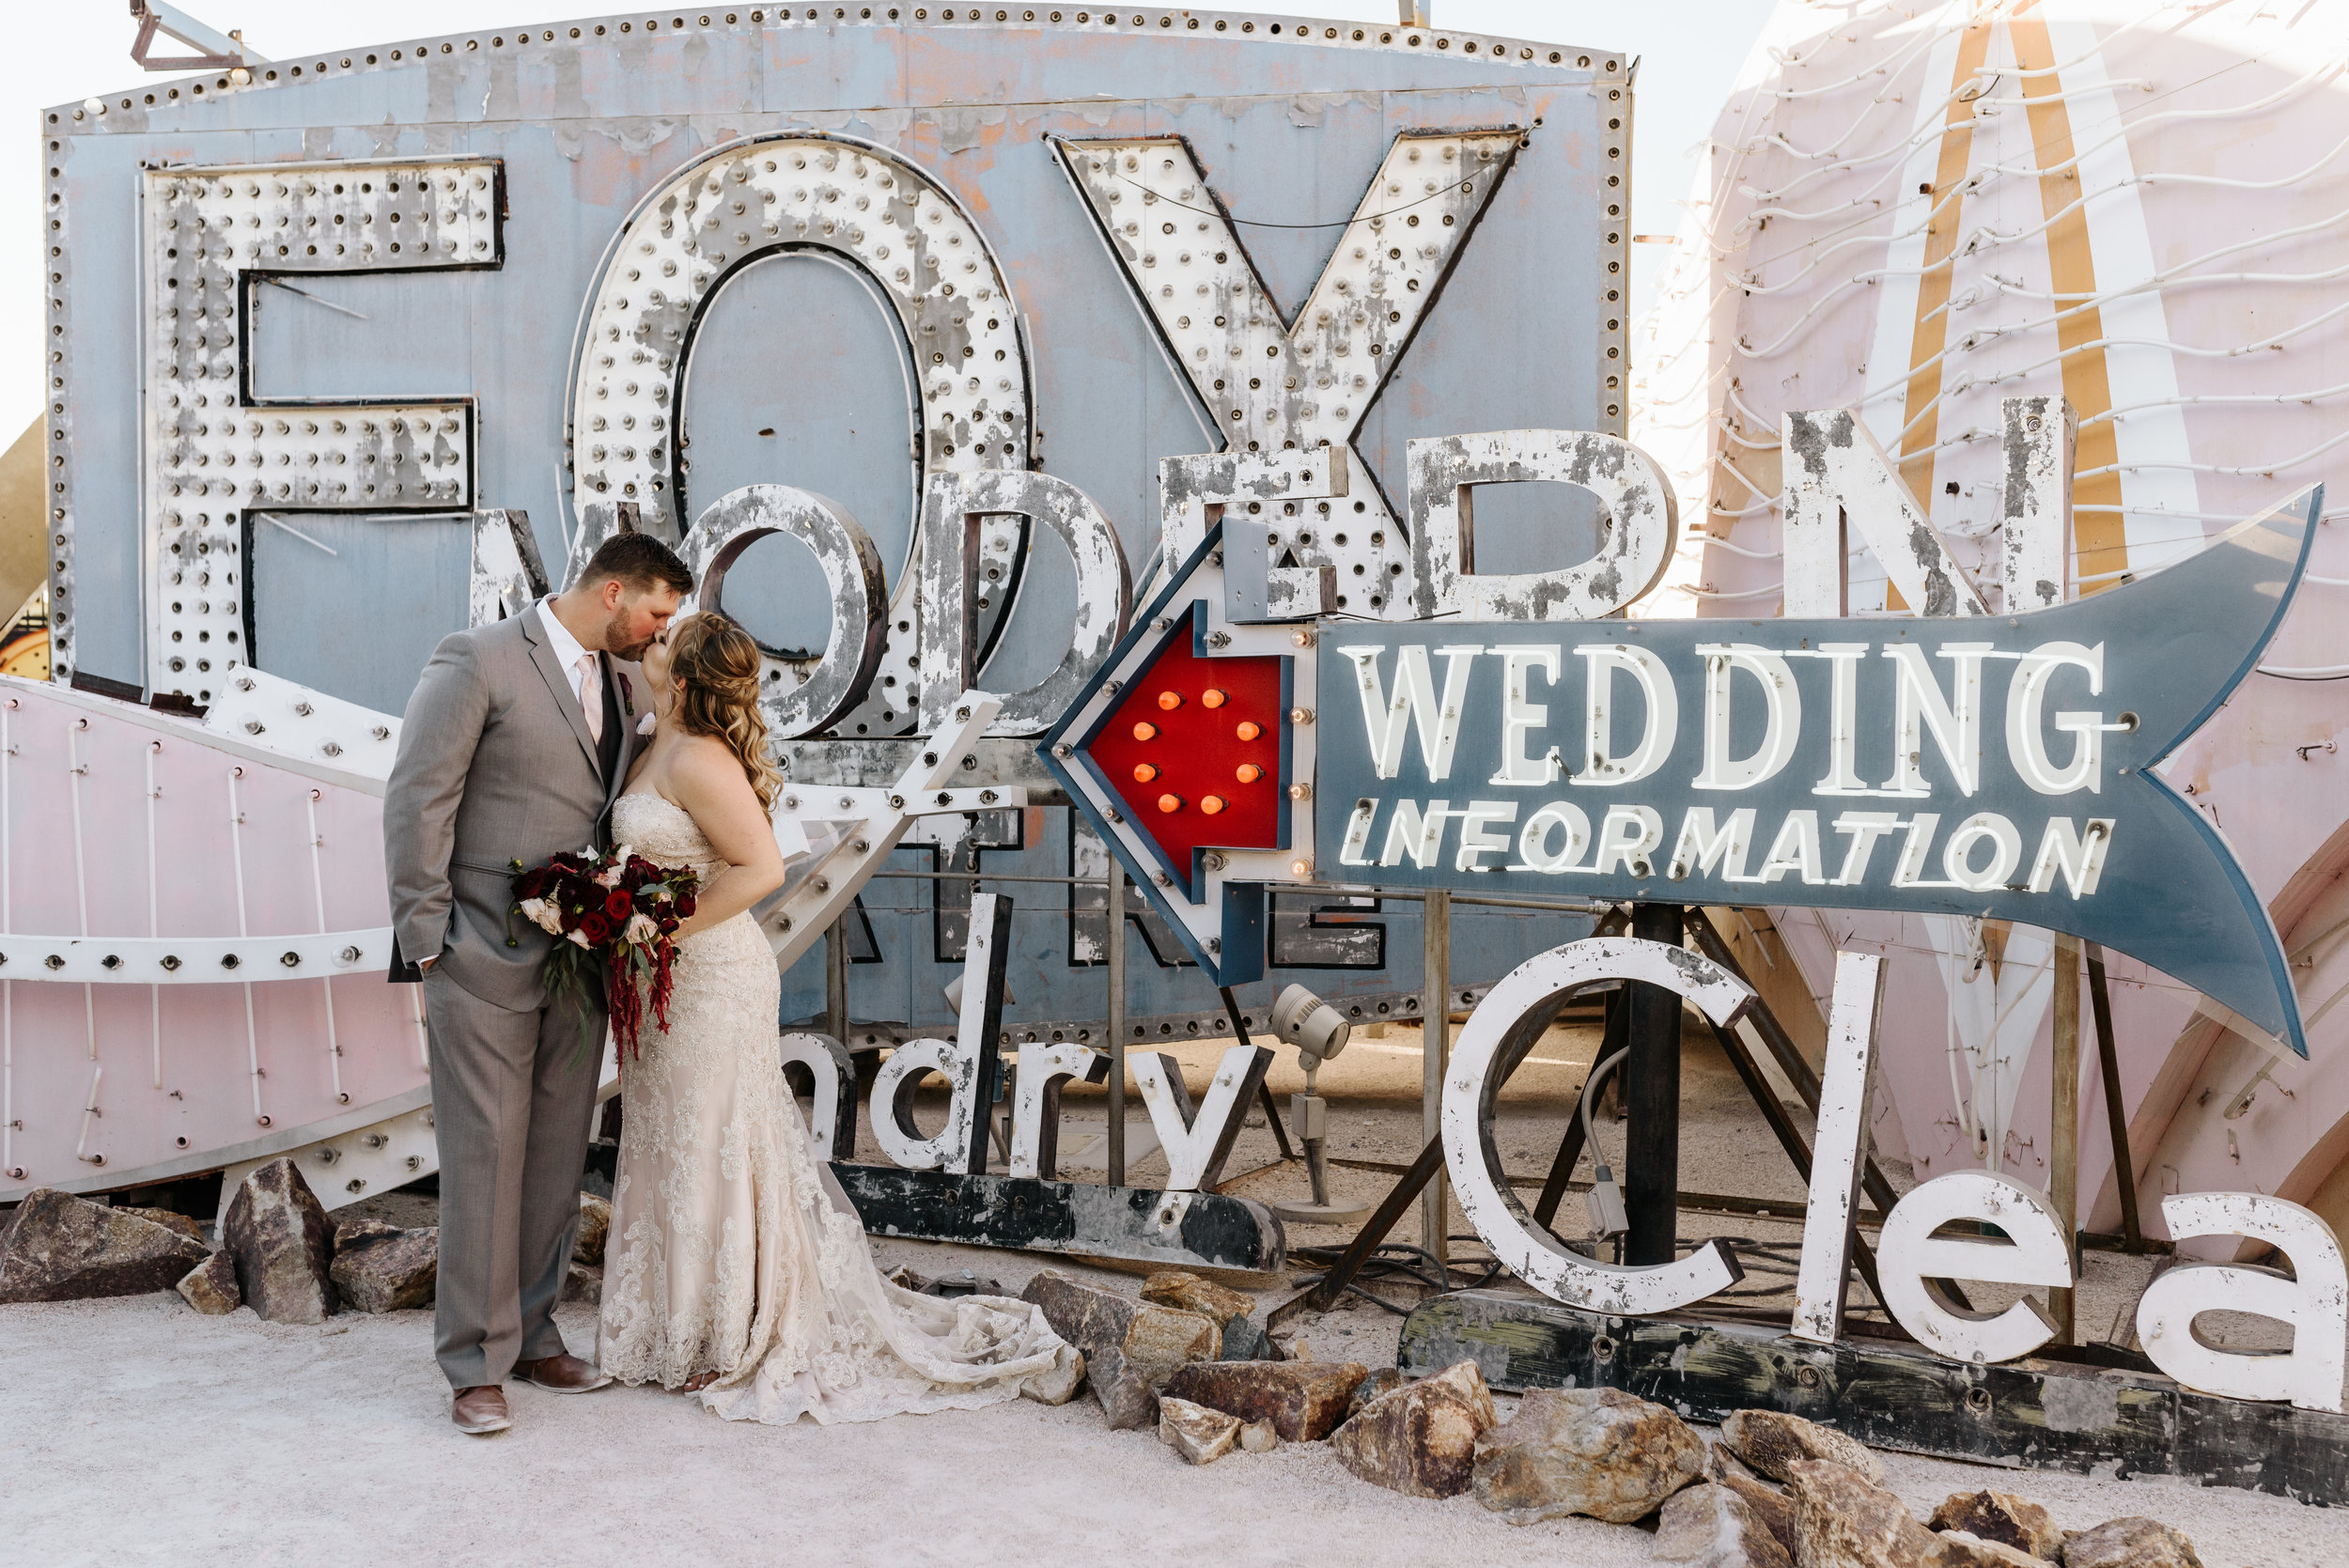 Neon-Museum-Wedding-Las-Vegas-Nevada-Golden-Nugget-Photography-by-V-Ally-and-Dan-3023.jpg